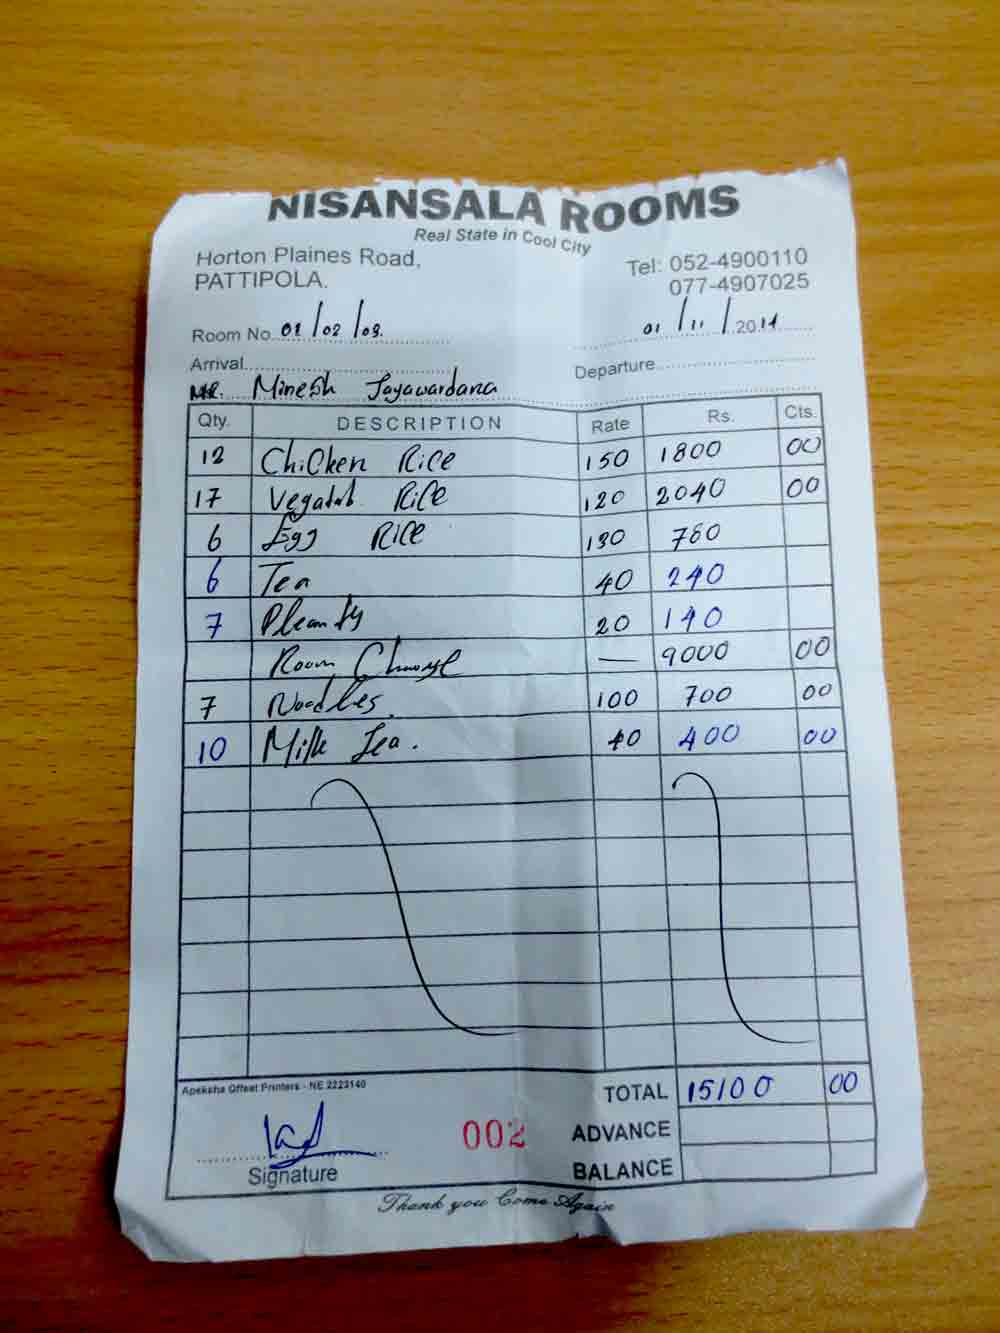 Nisansala Guest House at Pattipola Total Bill